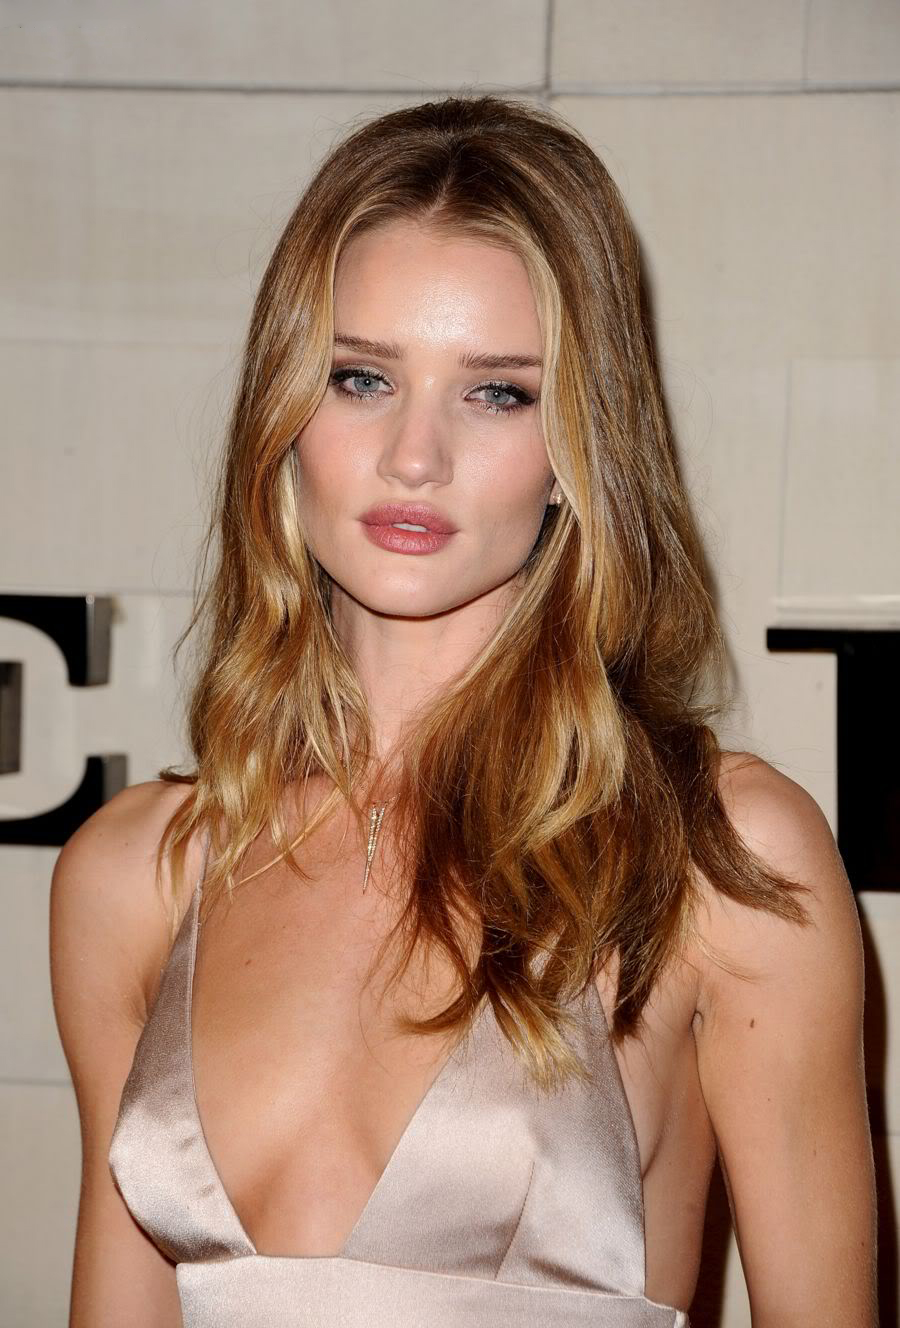 MB_ROSIEHUNTINGTON_BURBERRYEVENT_NOV11.jpeg